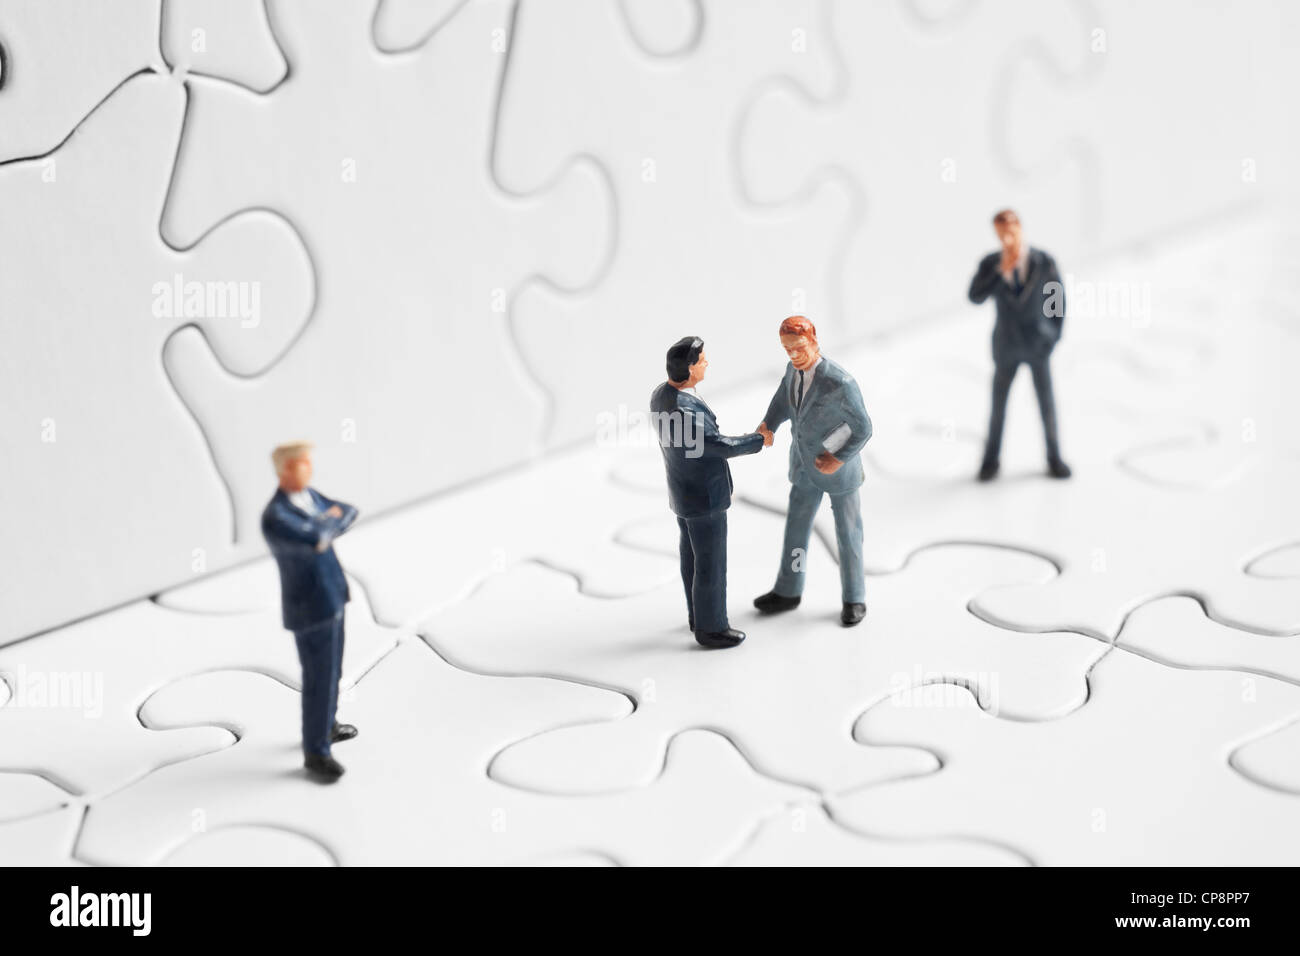 Business figures shaking hands on a puzzle - Stock Image